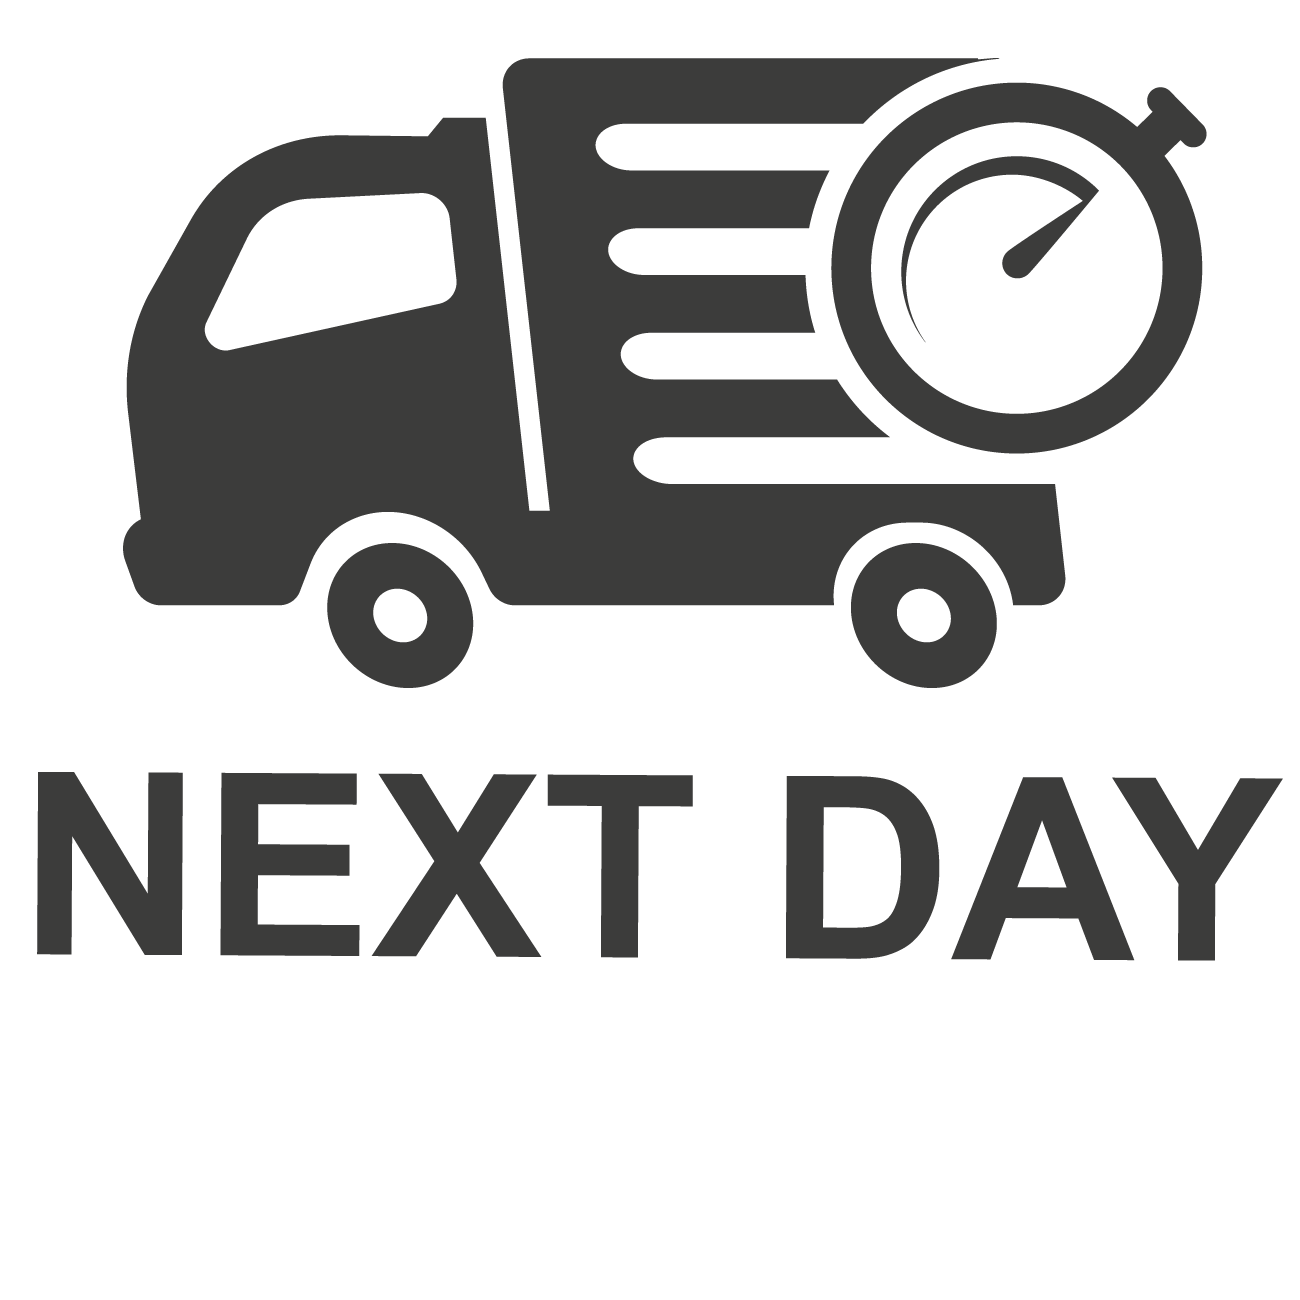 Next-Day Delivery